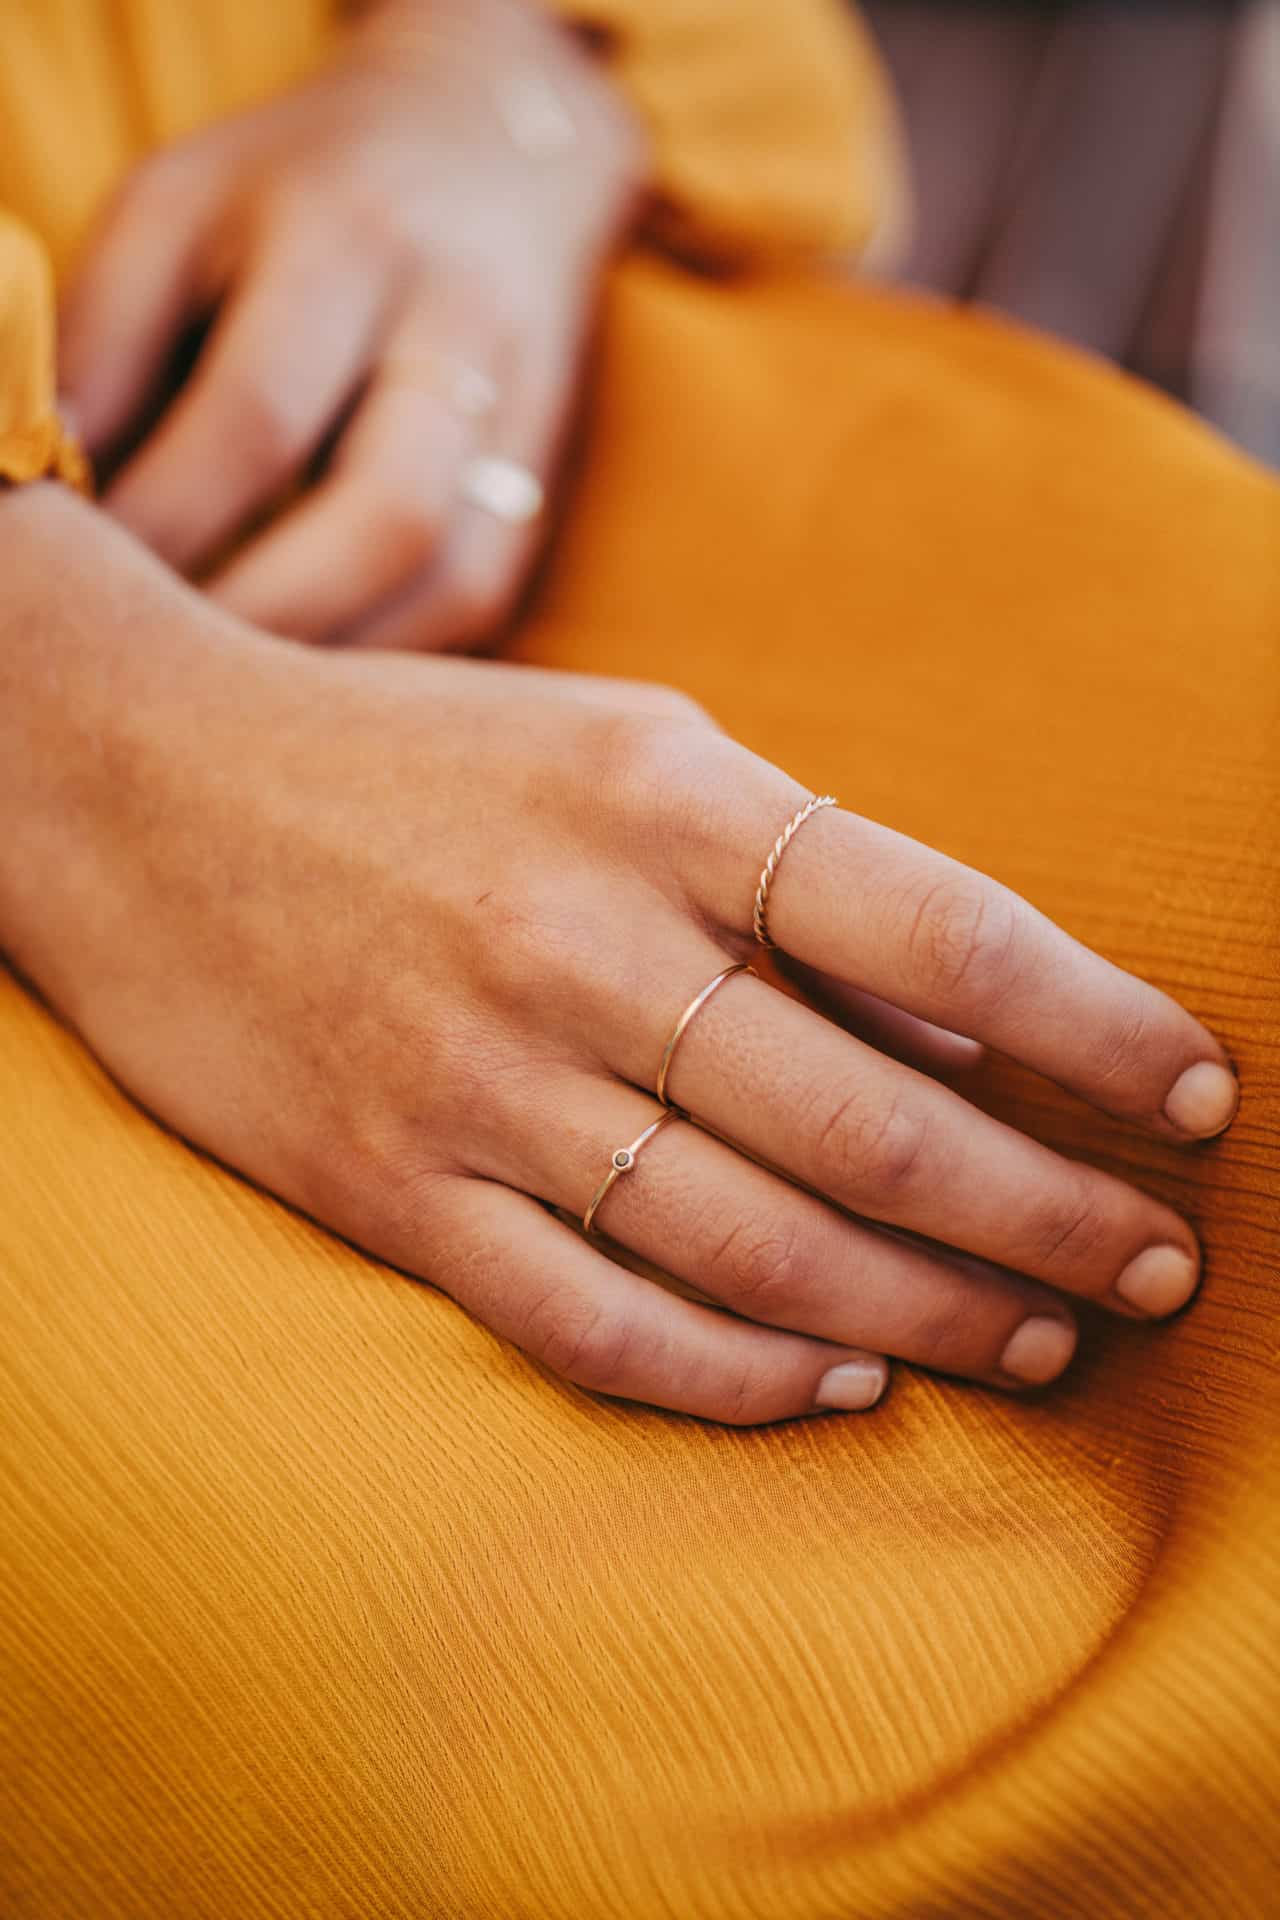 Are Lab Grown Diamonds Ethical